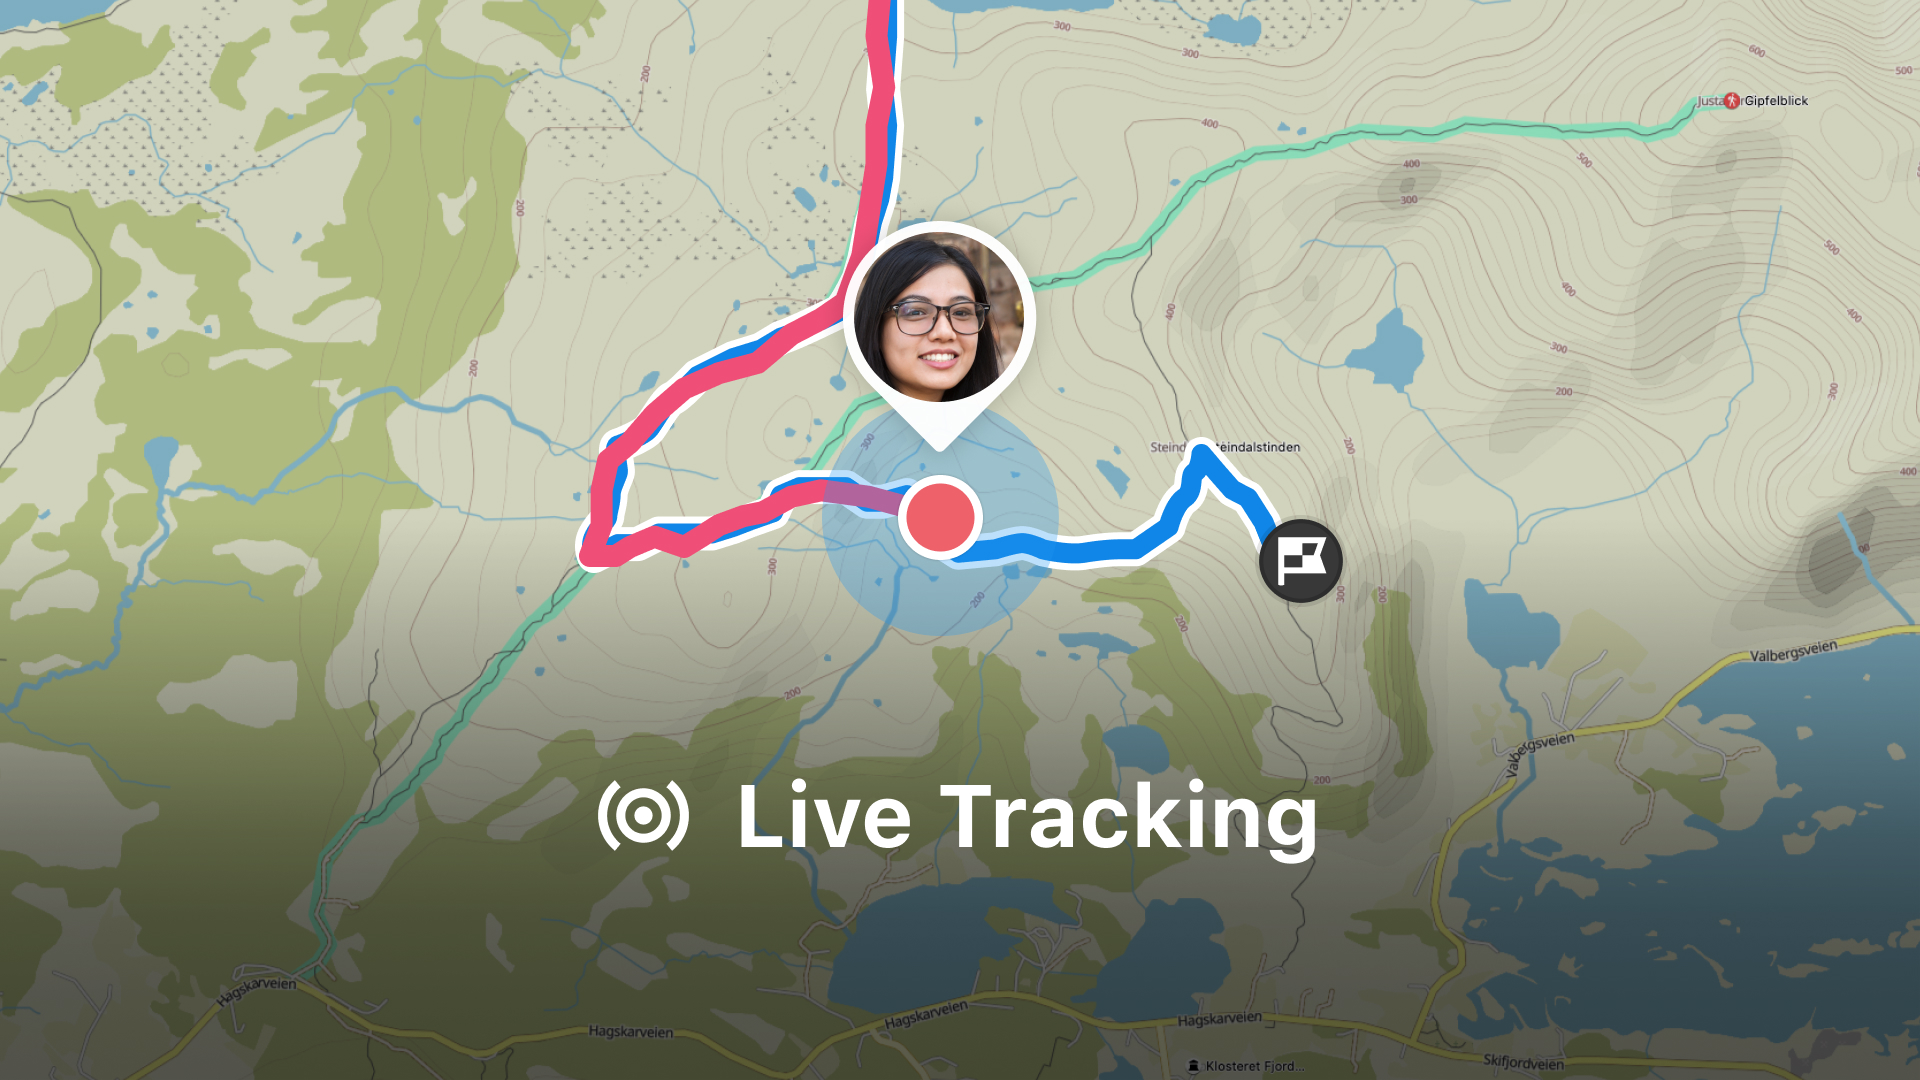 Live_Tracking_feature.jpg